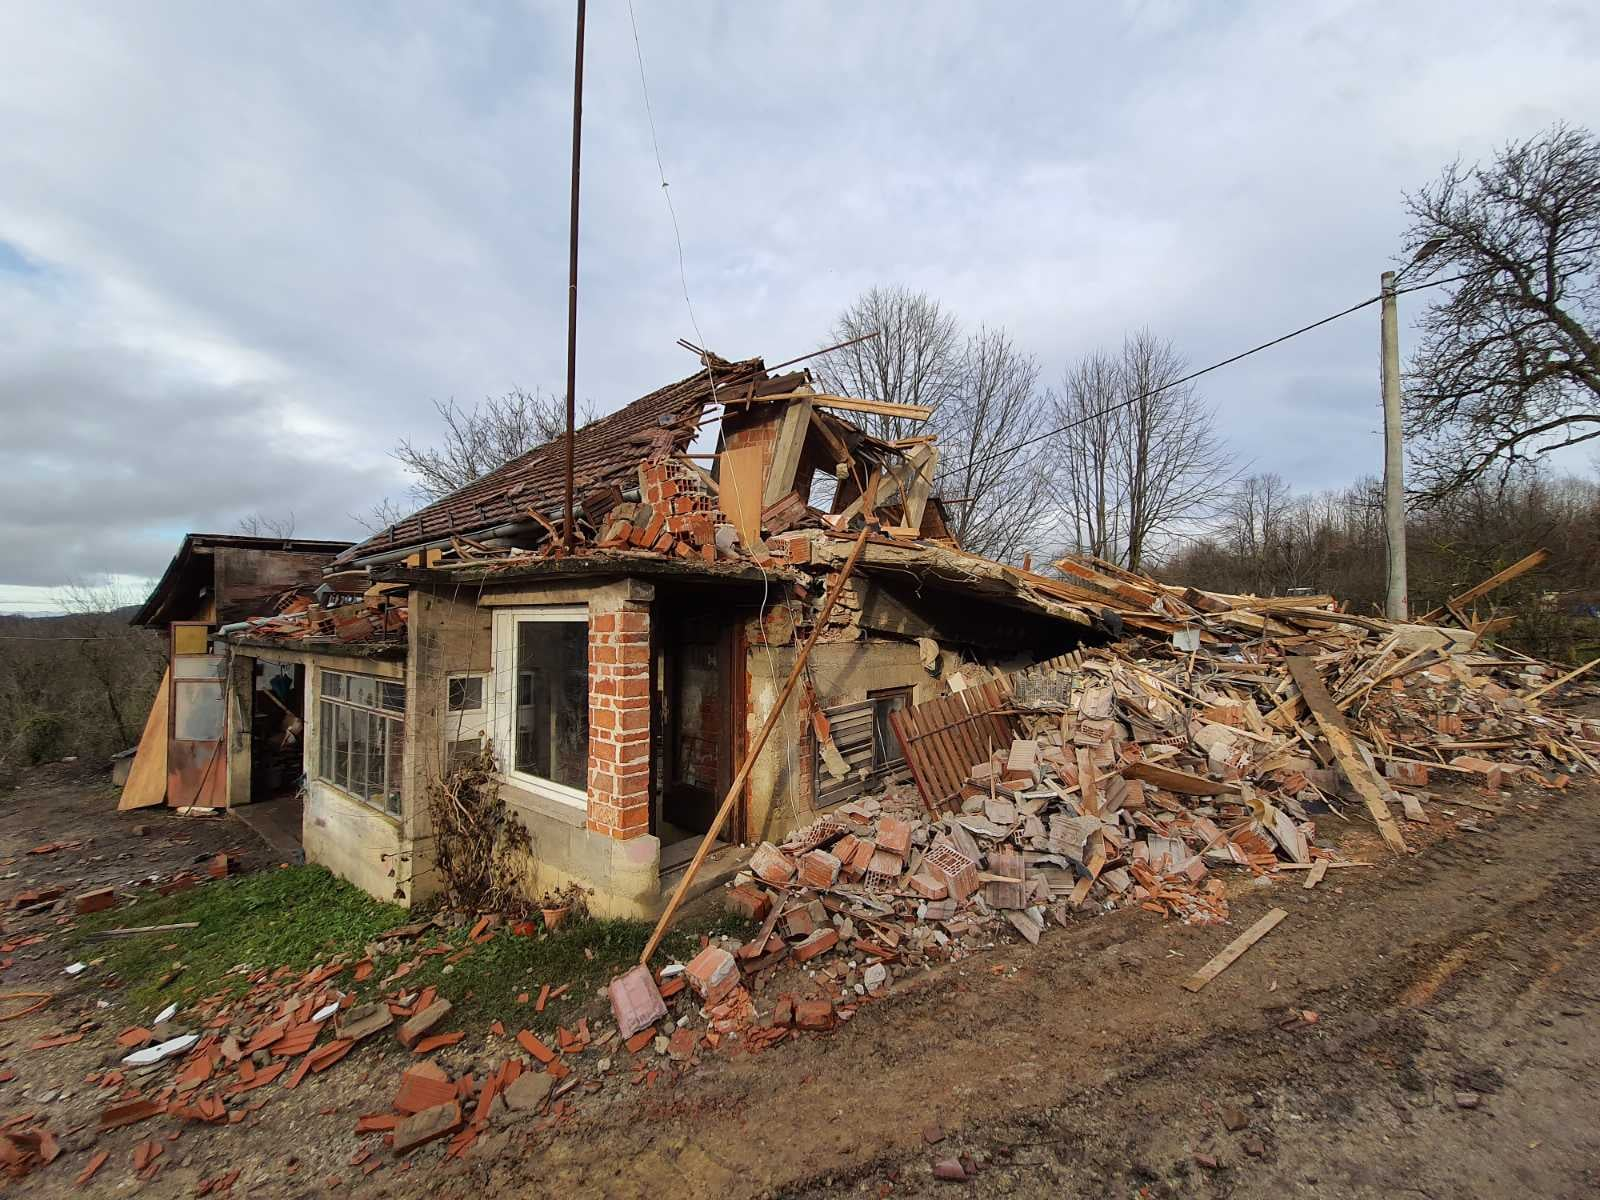 A house in Croatia destroyed in earthquakes